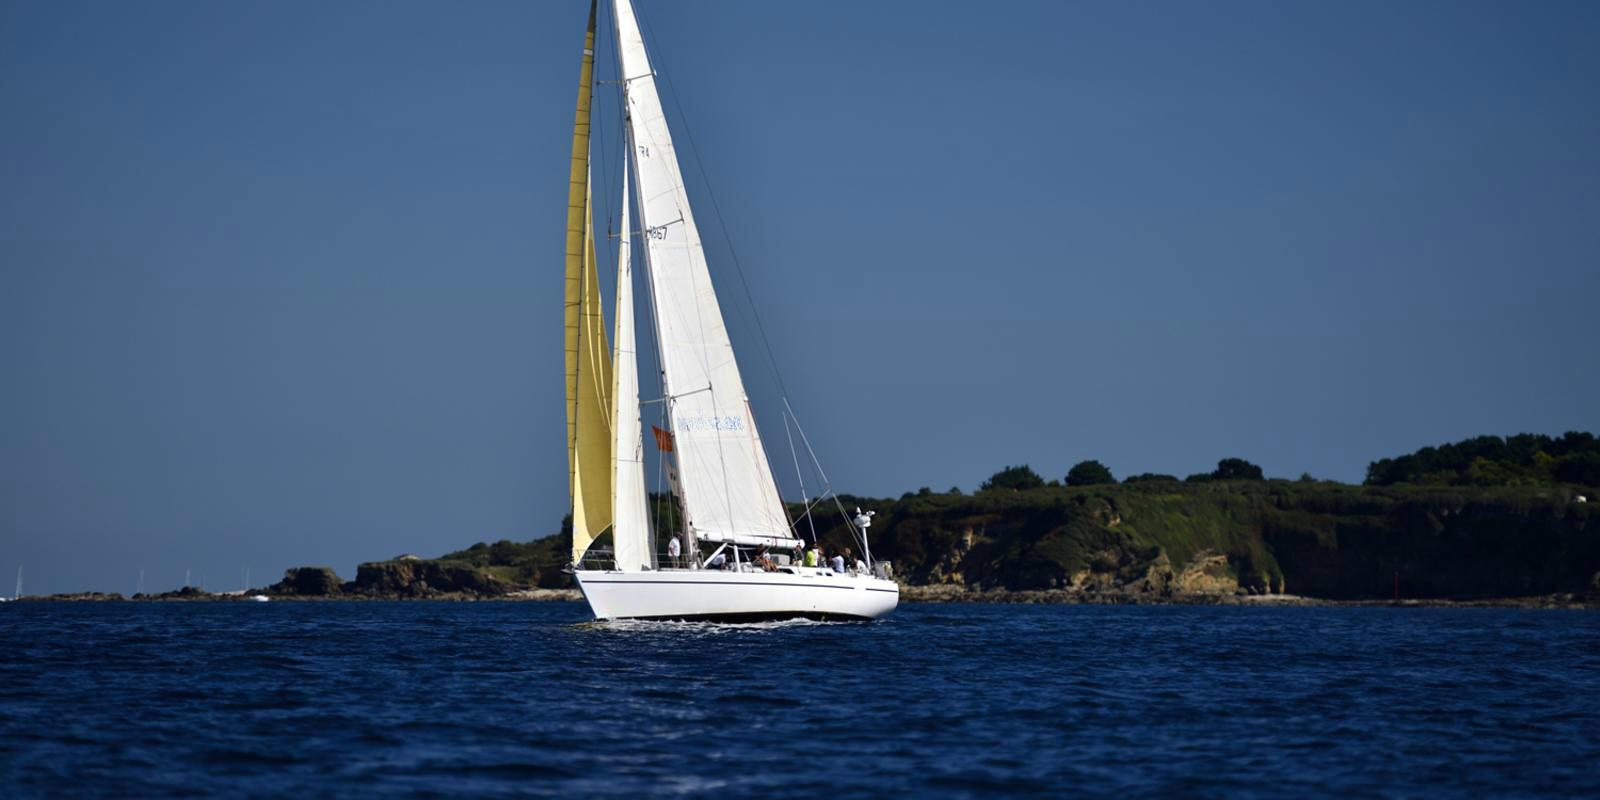 Sailing course, discovery cruise in Southern Brittany